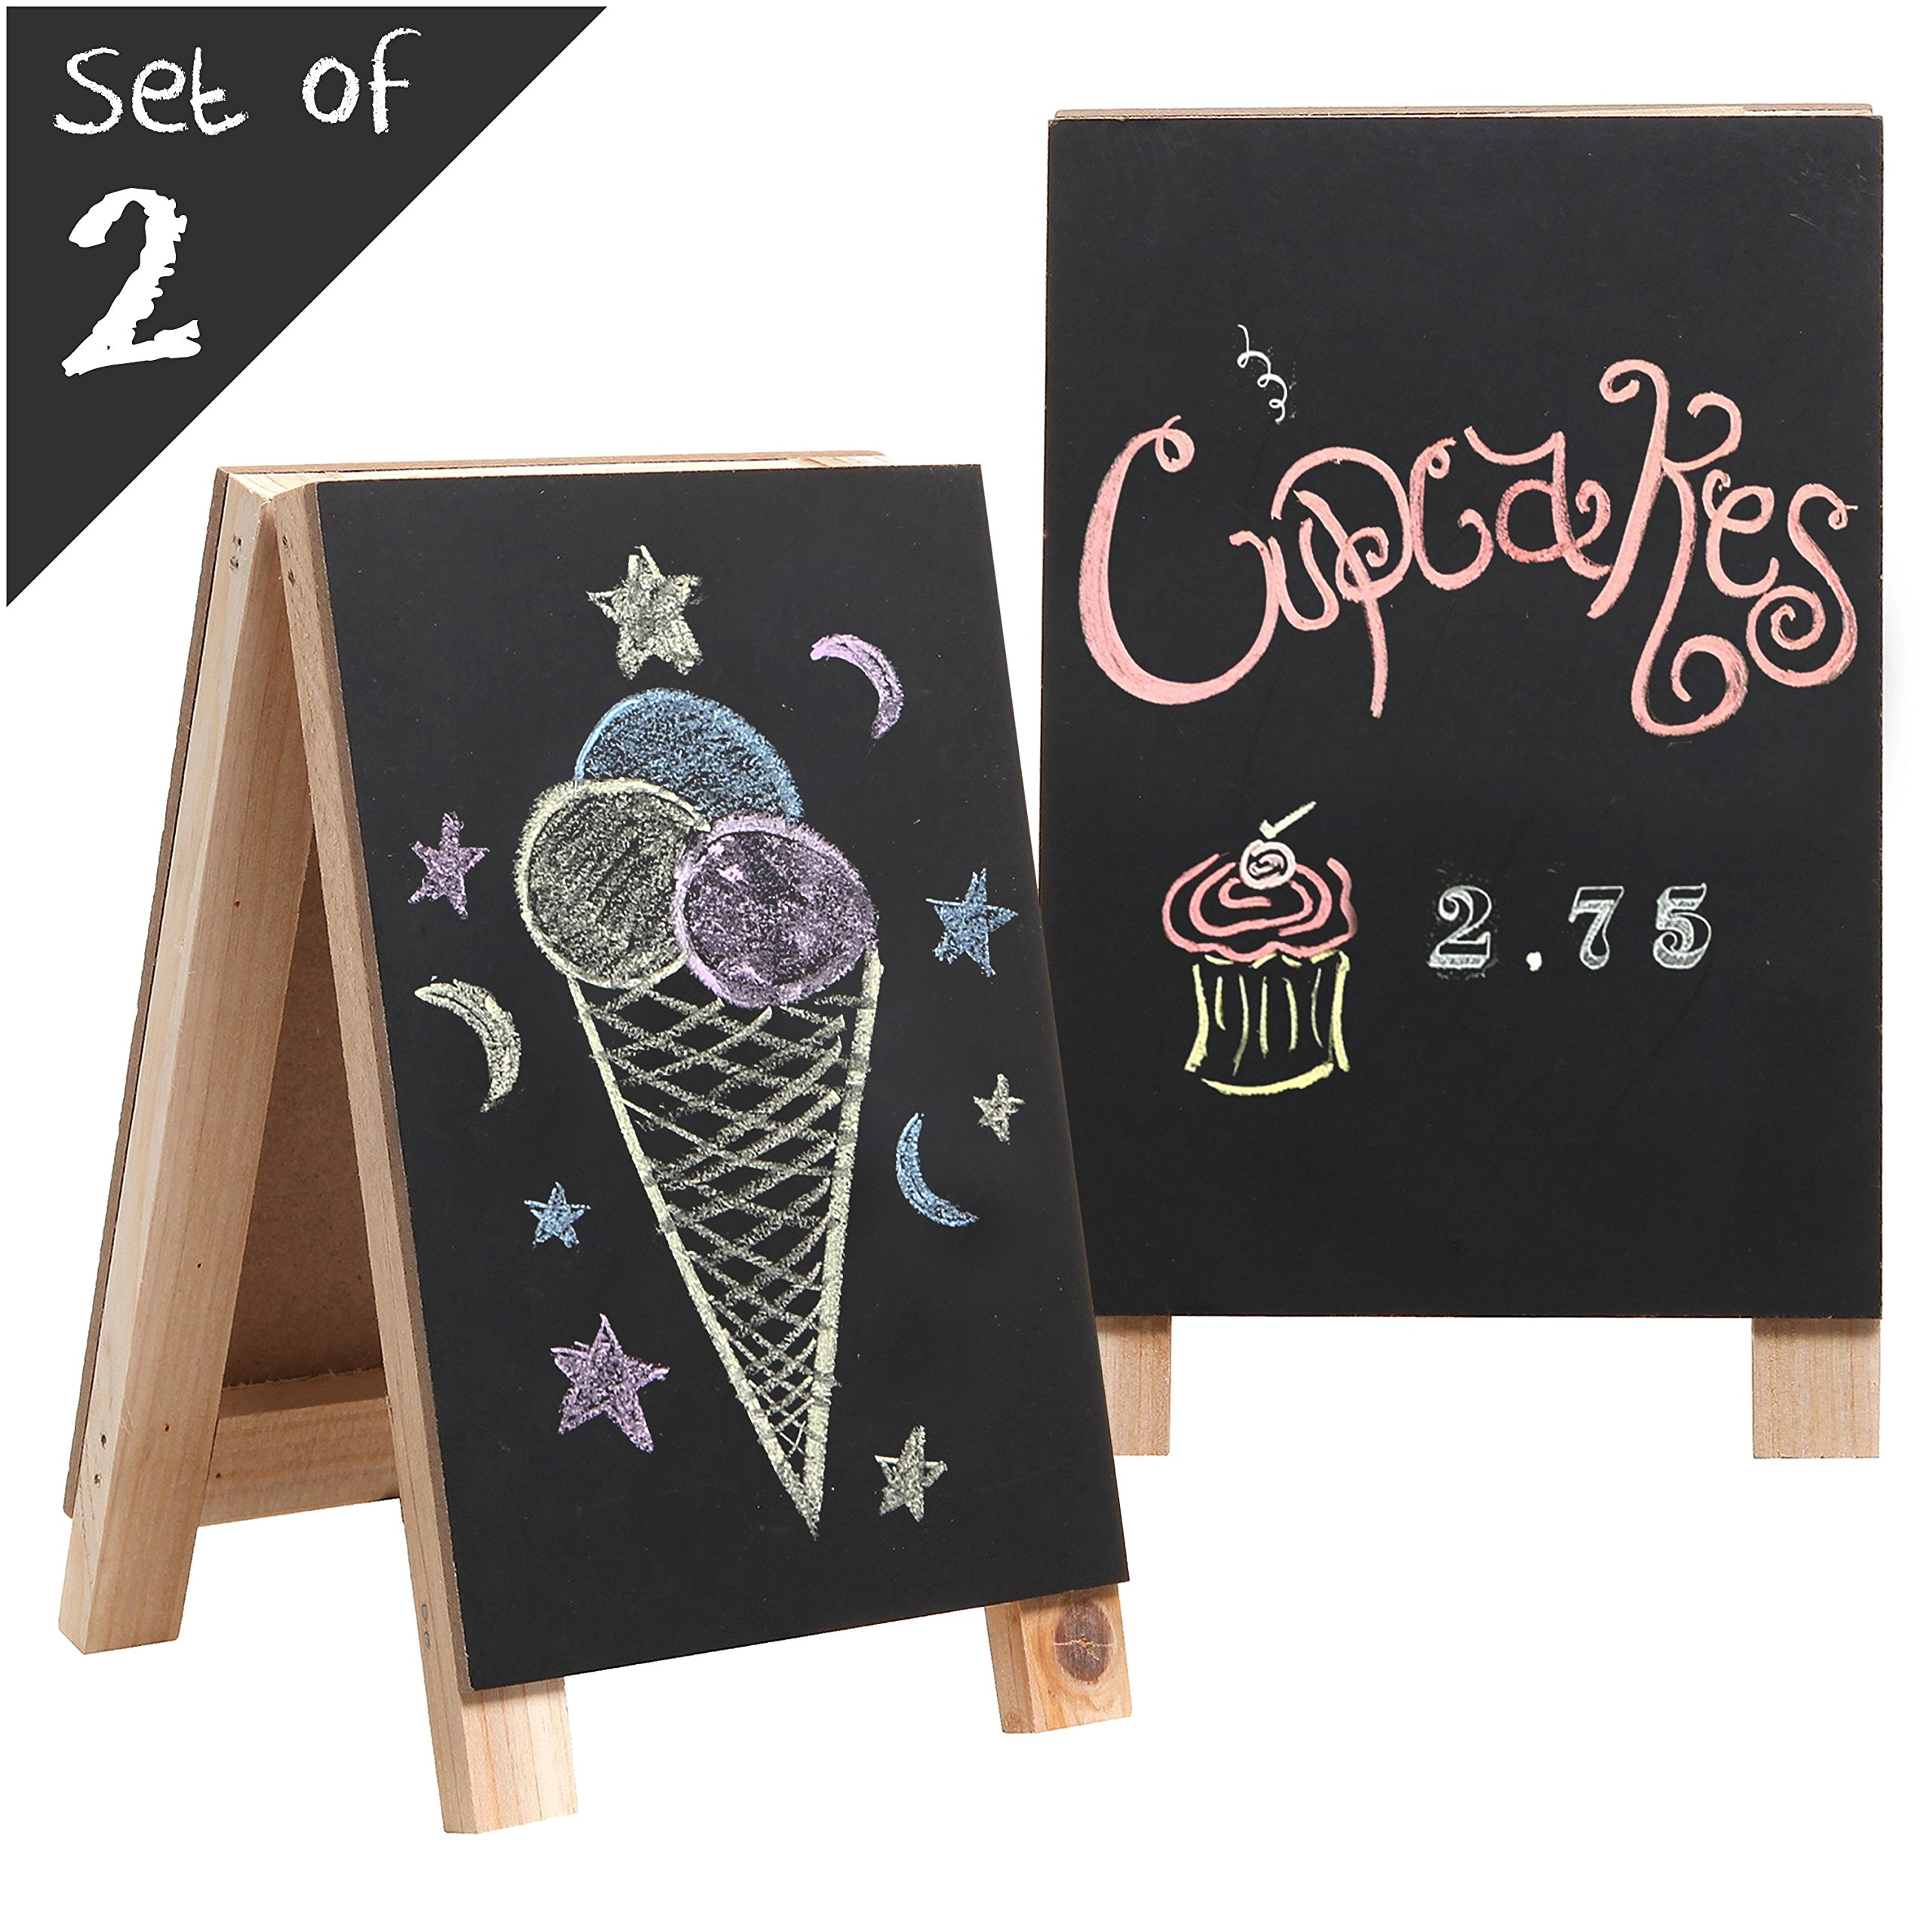 Tabletop Mini Wooden Easel Chalkboard Sign, Erasable Double-Sided Message Memo Board - MyGift